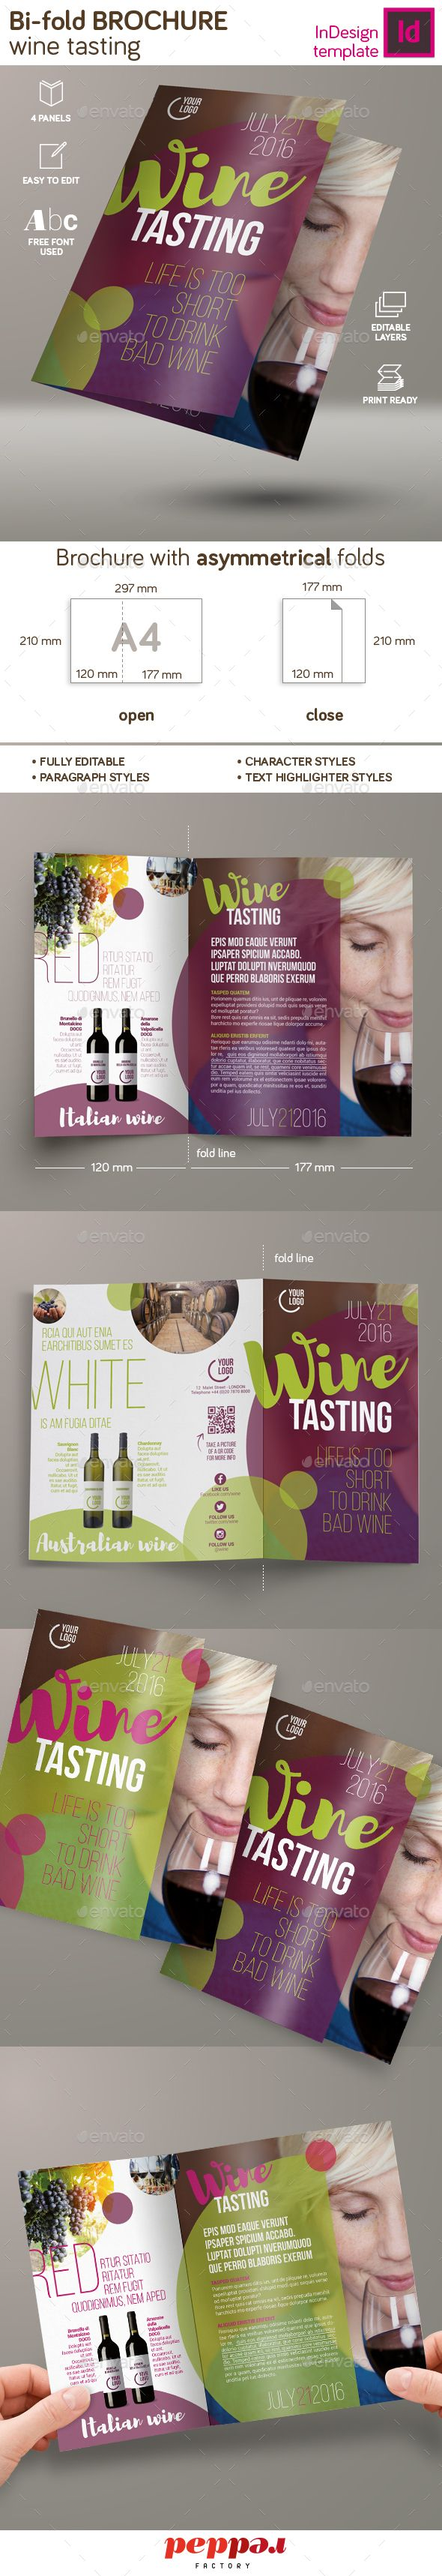 Wine Tasting Bi-Fold Brochure | Folletos, Tutoriales y Cocinas